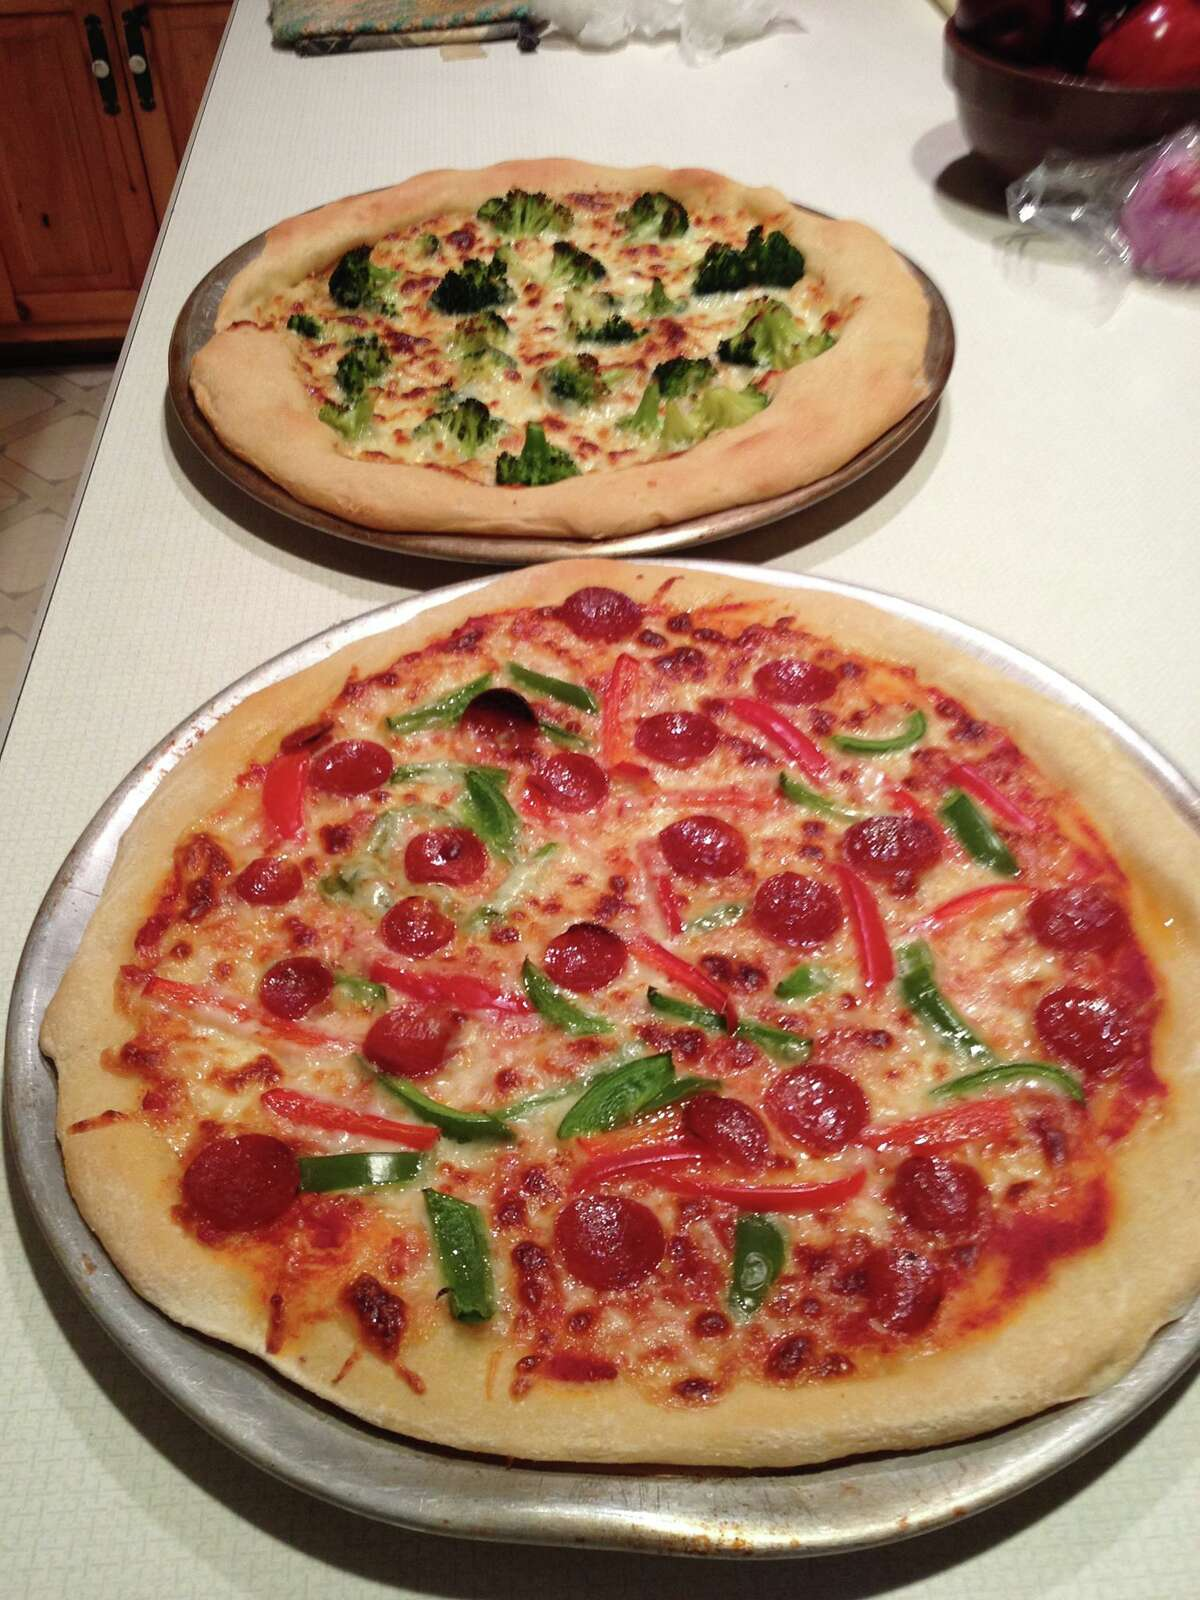 """Susan Demarest says her sister-in-law, Joanne, """"cooked the best pizza and shared with us girls for a weekend treat."""""""